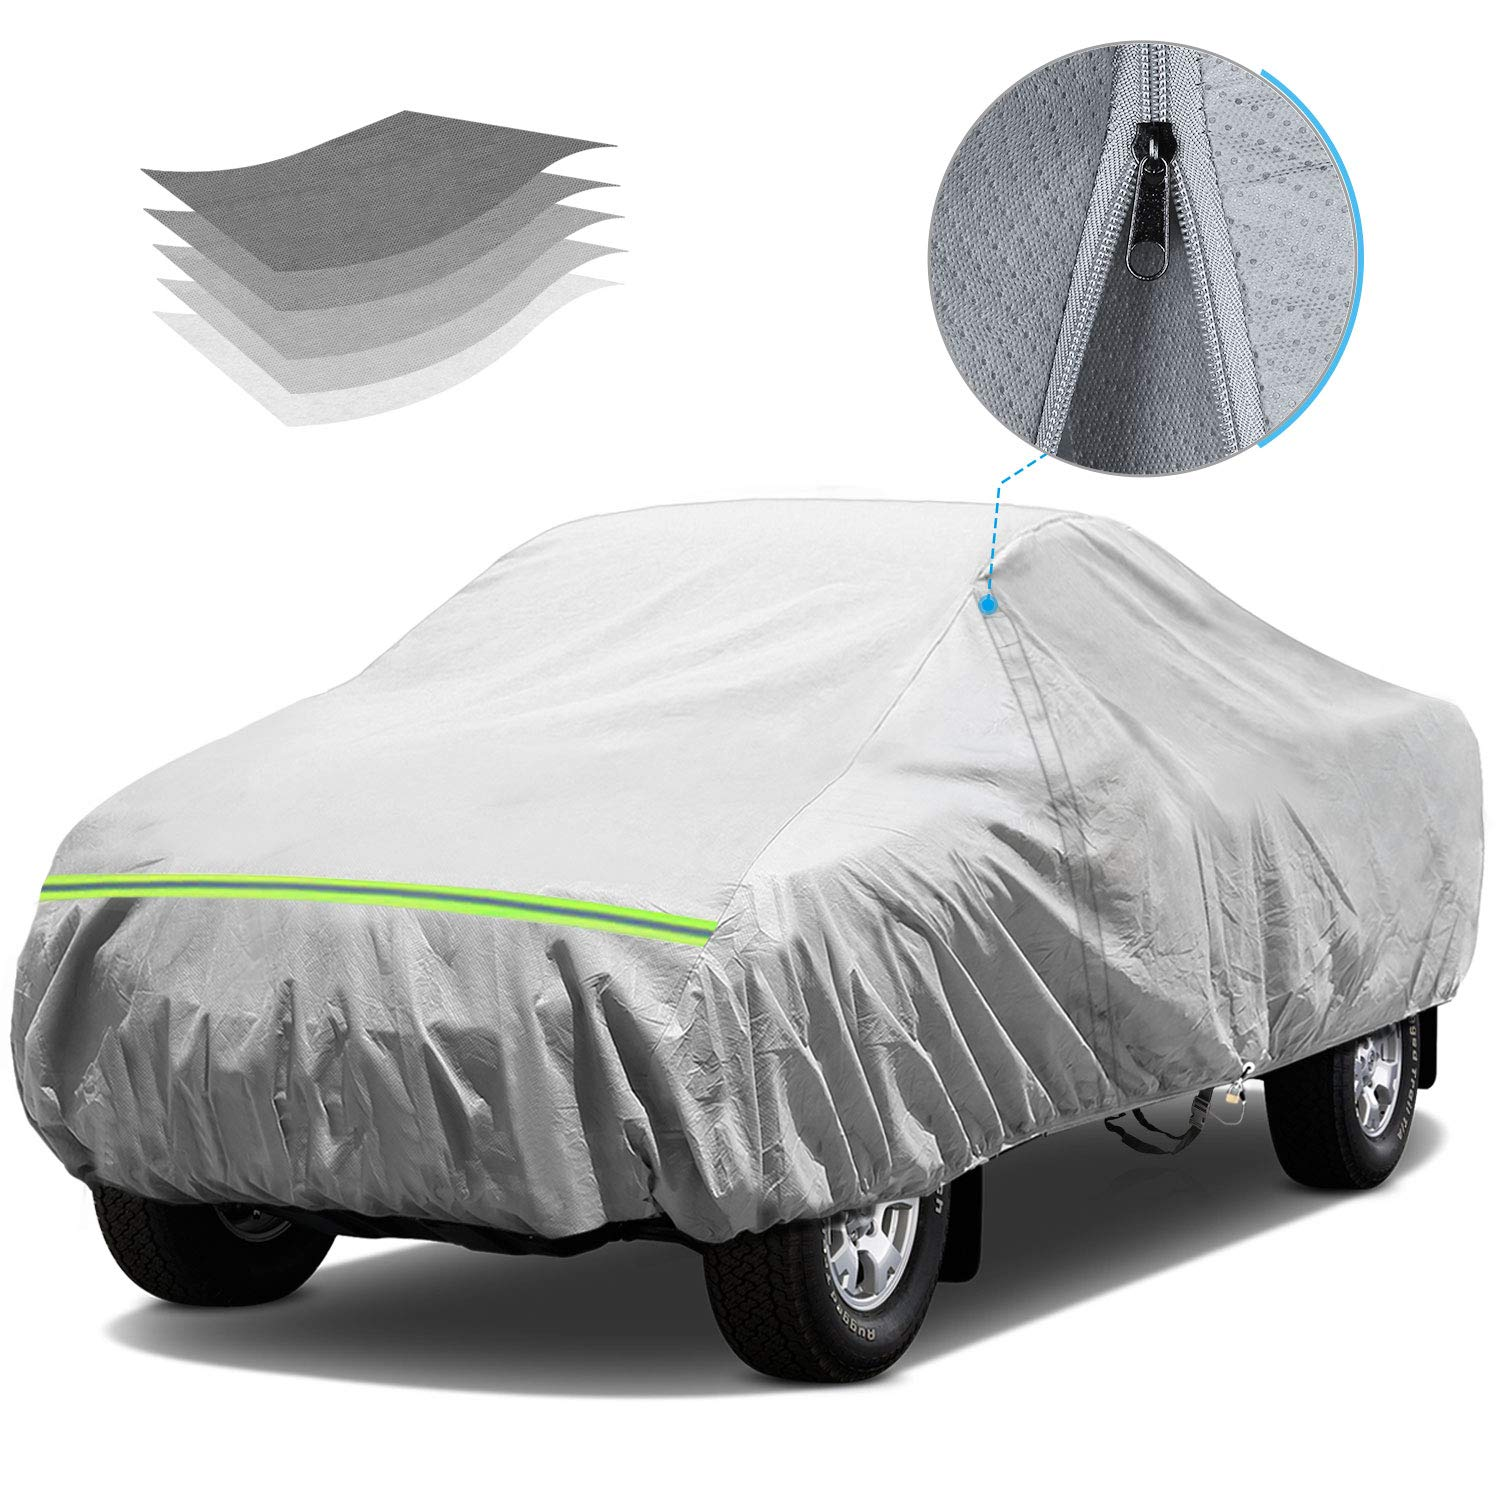 KAKIT Waterproof Truck Cover, 5 Layers All Weather UV Protection Car Cover with Driver Door Zipper for Truck Pickup, Fits up to 242''